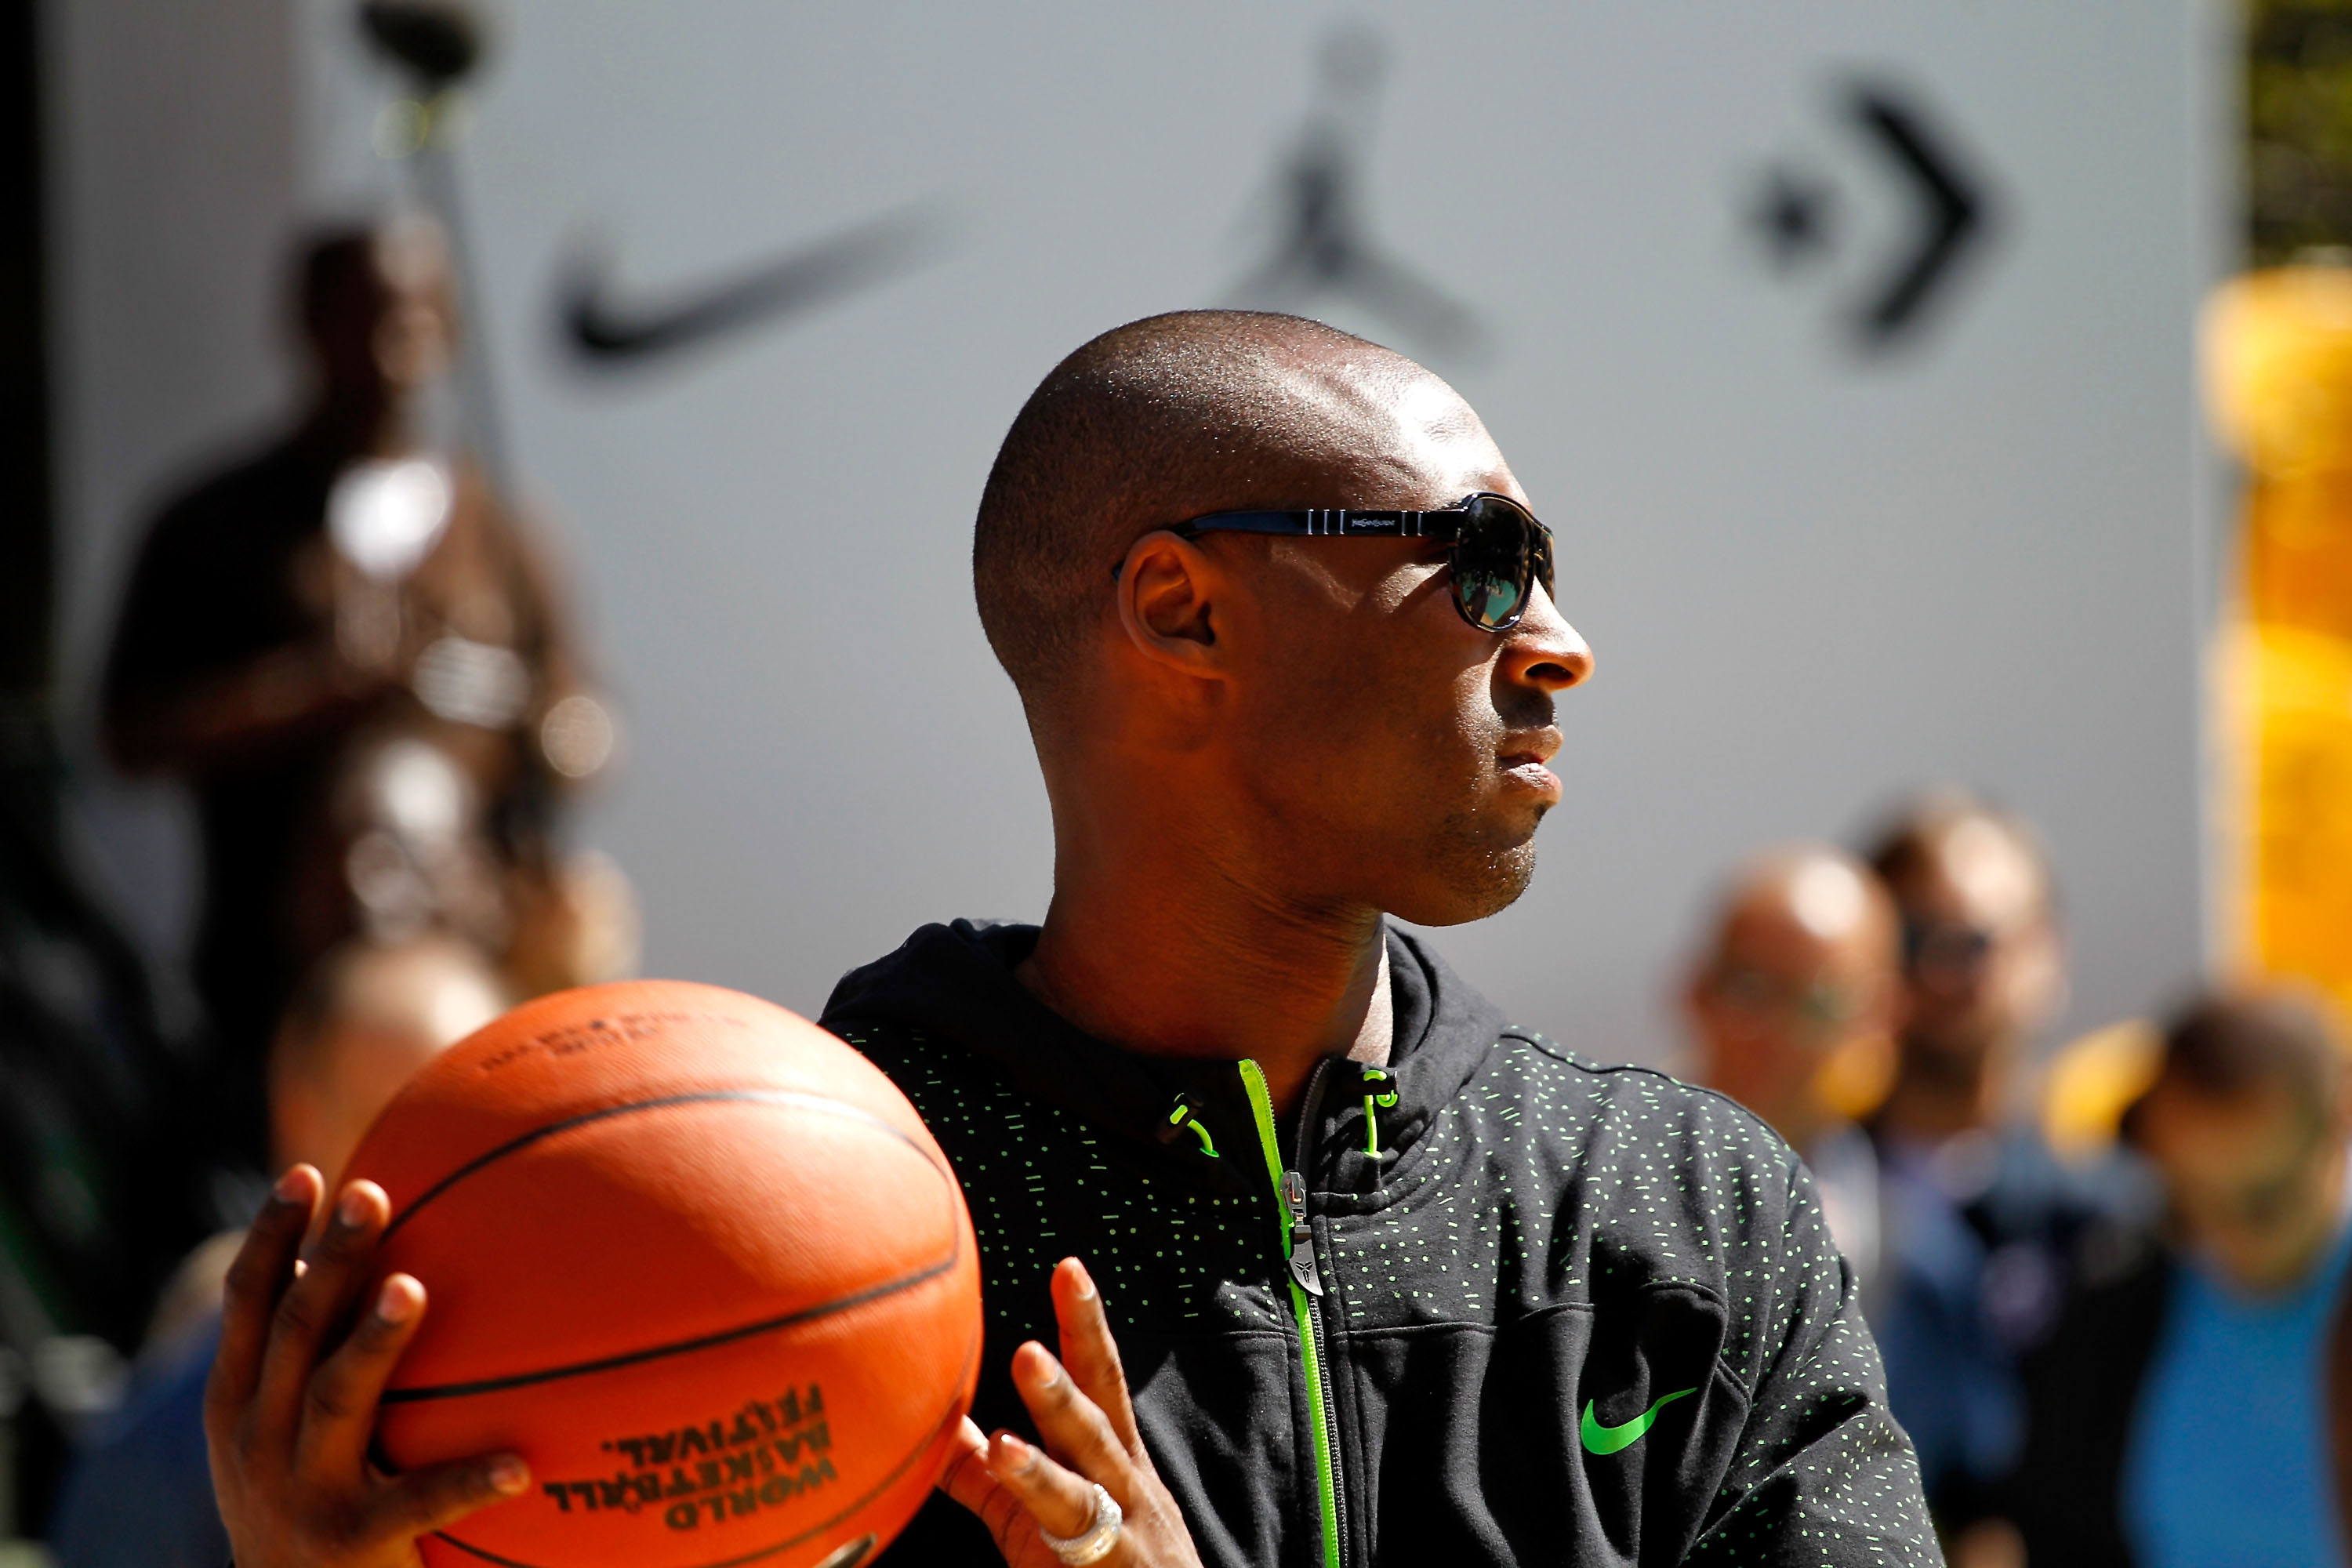 NEW YORK CITY, NY - AUGUST 14:  Kobe Bryant attends the World Basketball Festival at Rucker Park on August 14, 2010 in New York City.  (Photo by Chris Trotman/Getty Images for Nike)